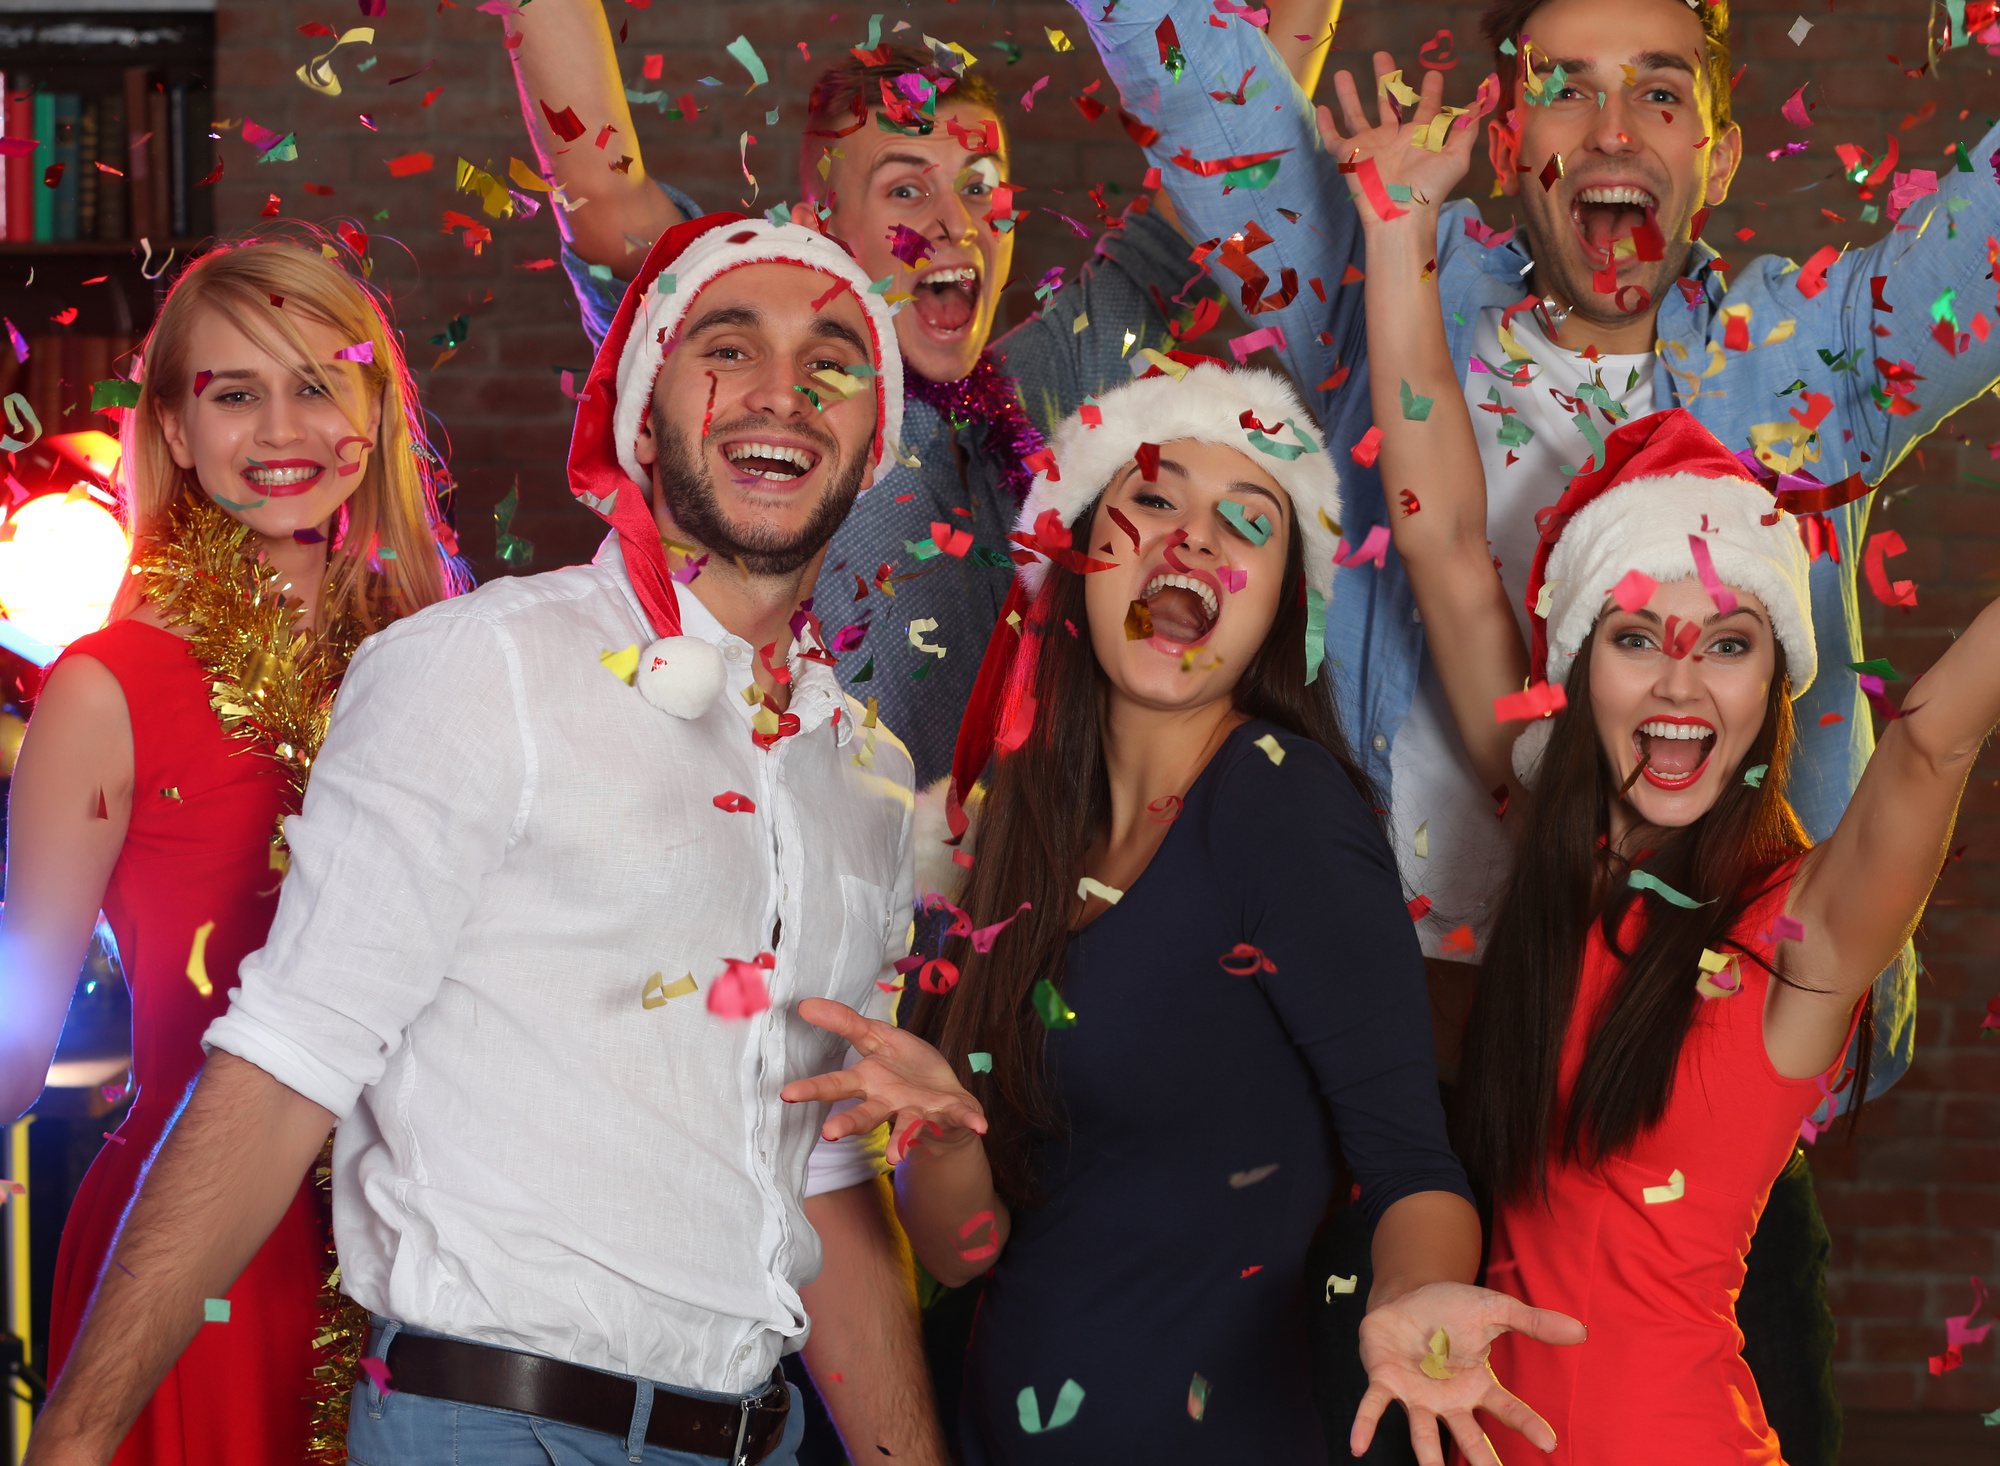 10 Excellent Tips for Surviving the Holiday Party at Work This Year